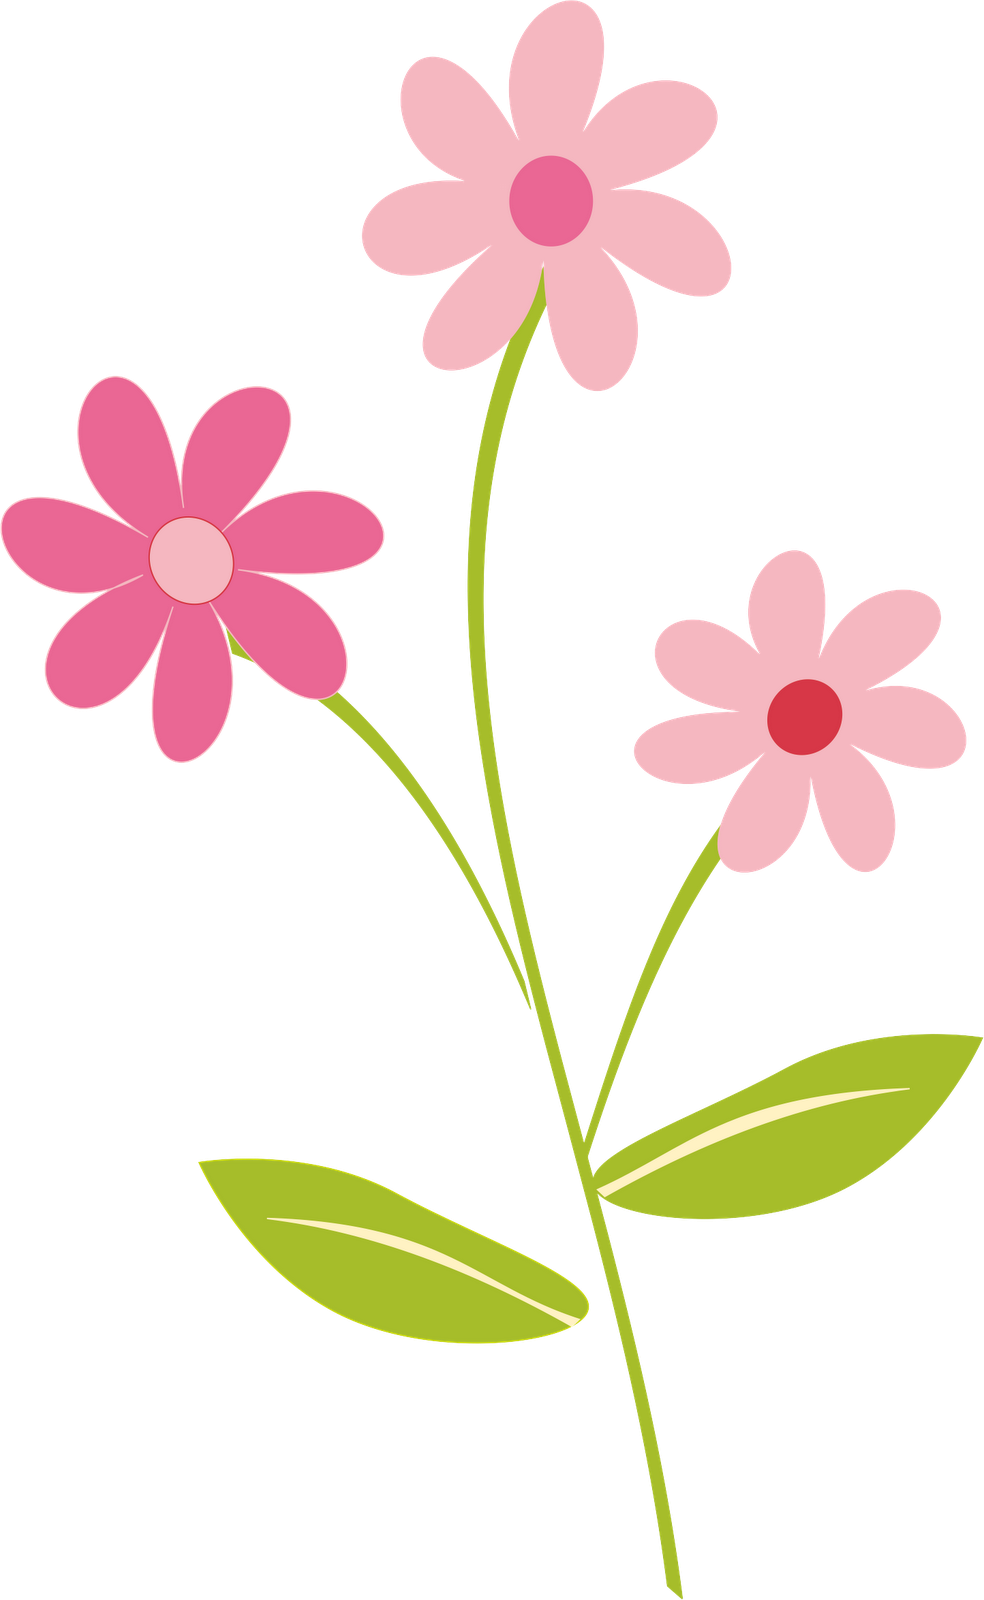 Flower border png clipartfest. Clipart photos of flowers